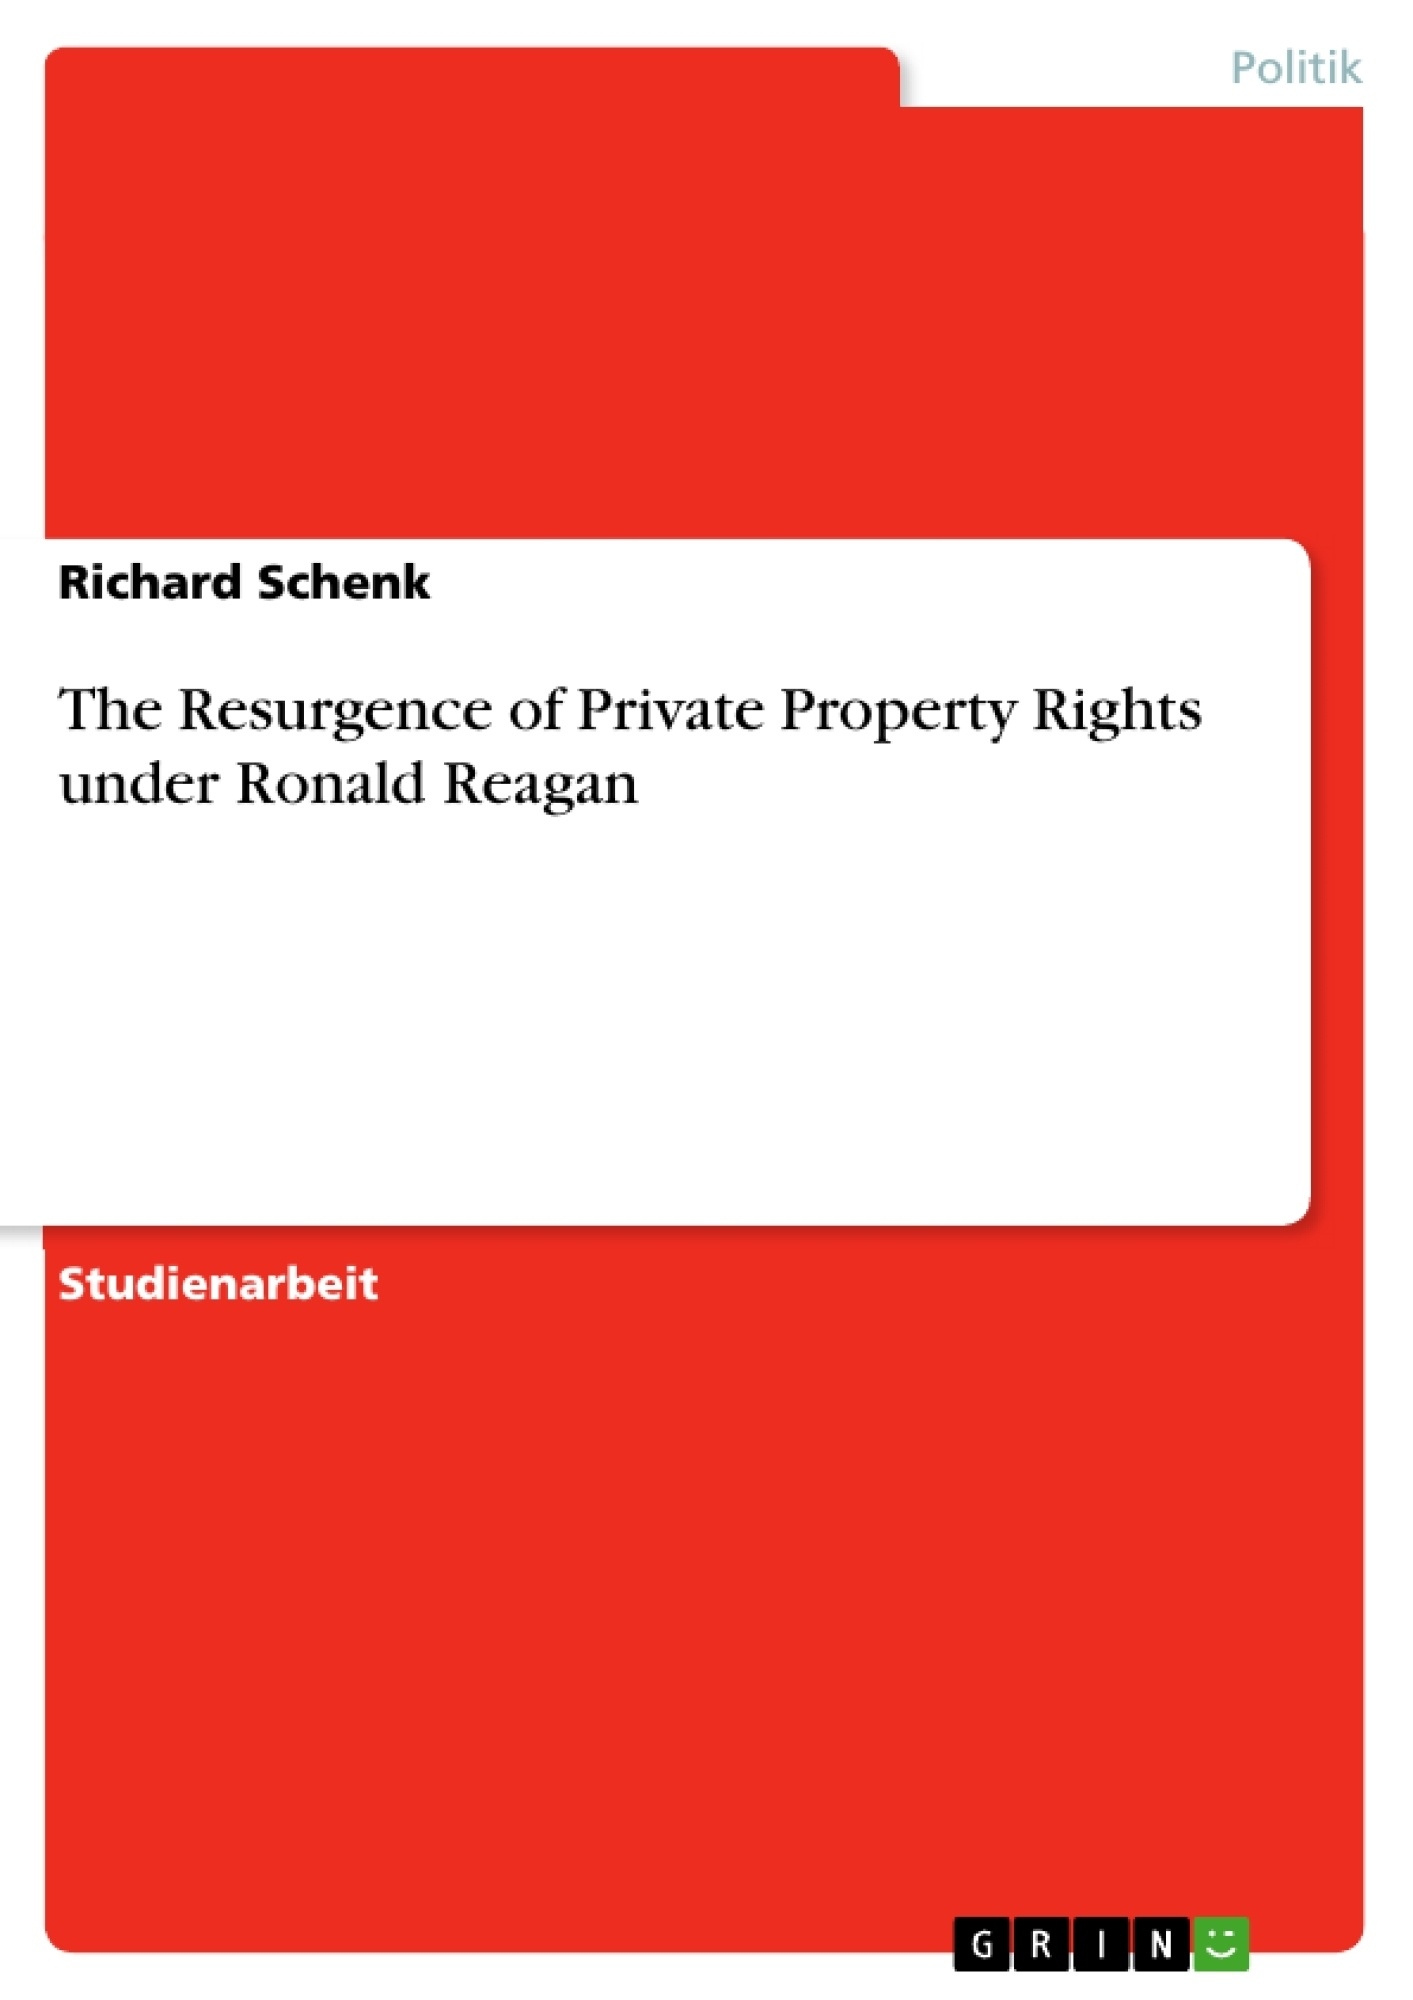 Titel: The Resurgence of Private Property Rights under Ronald Reagan